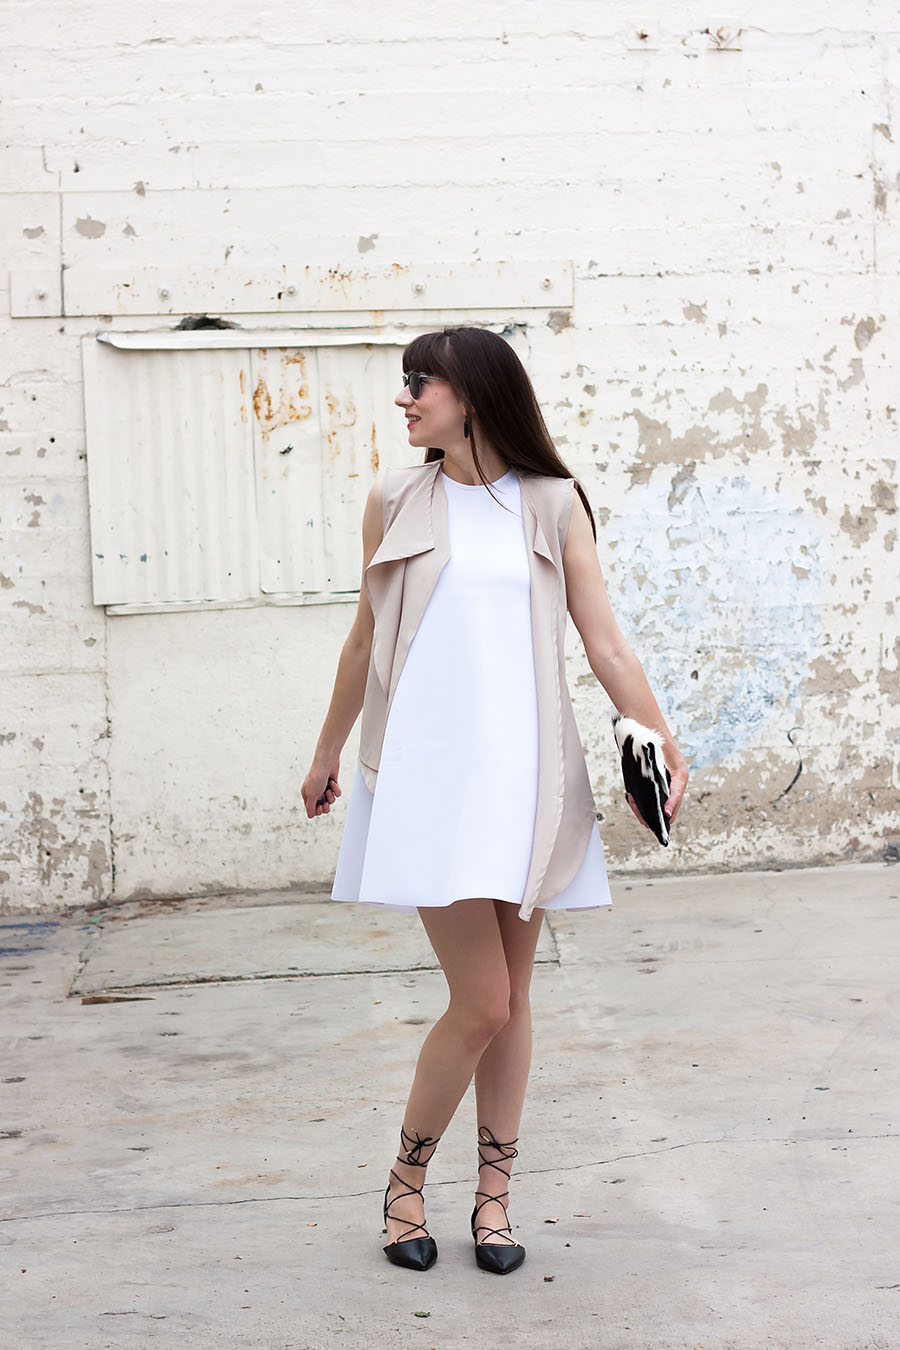 Black Lace Up Flats, Black and White Outfit, White Shift Dress